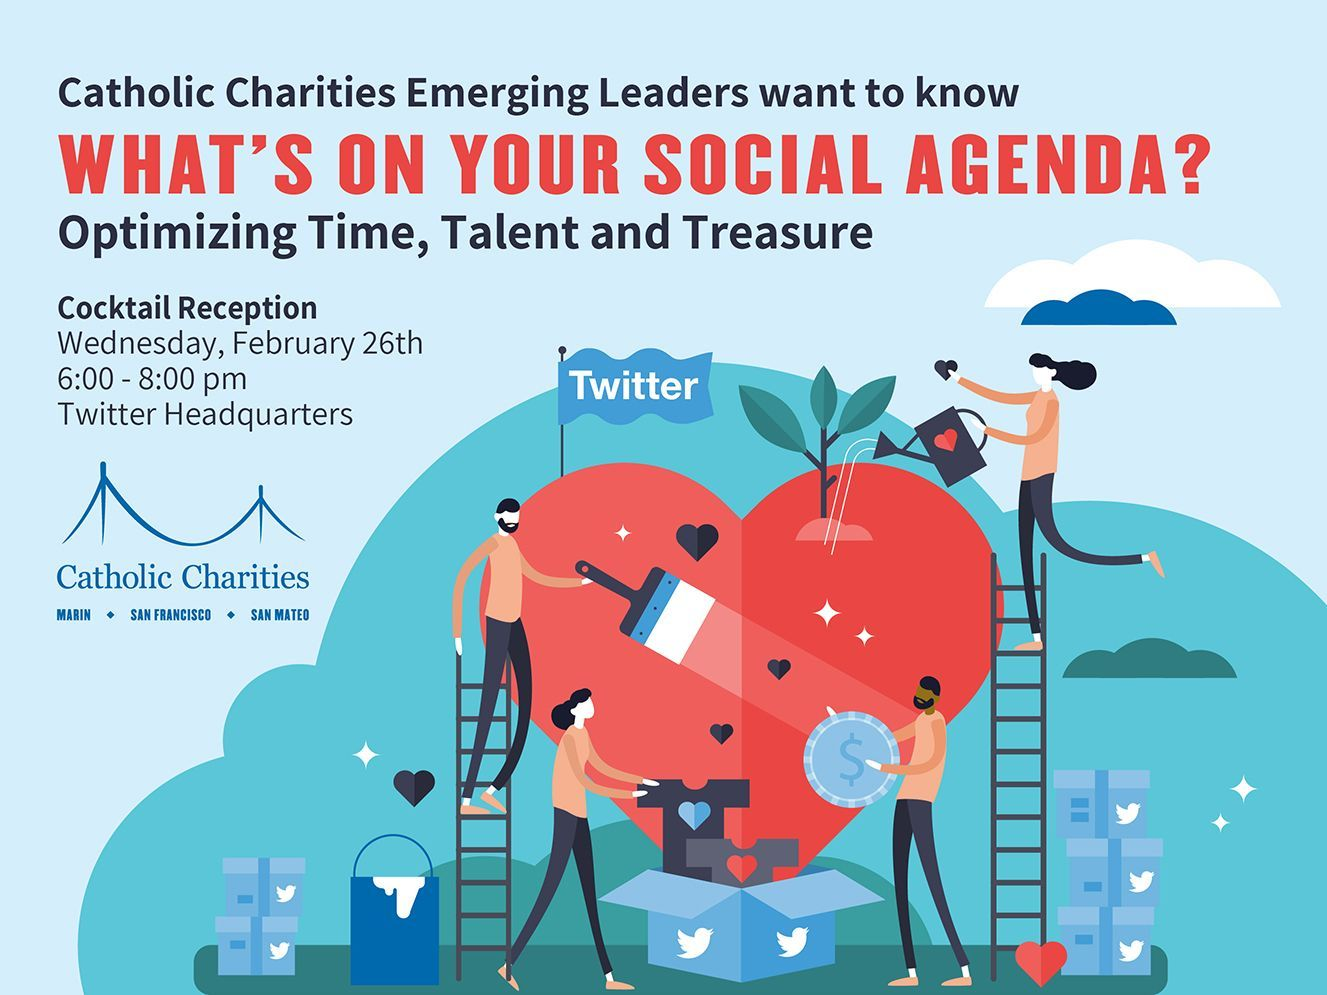 Social Good Event at Twitter, February 26th